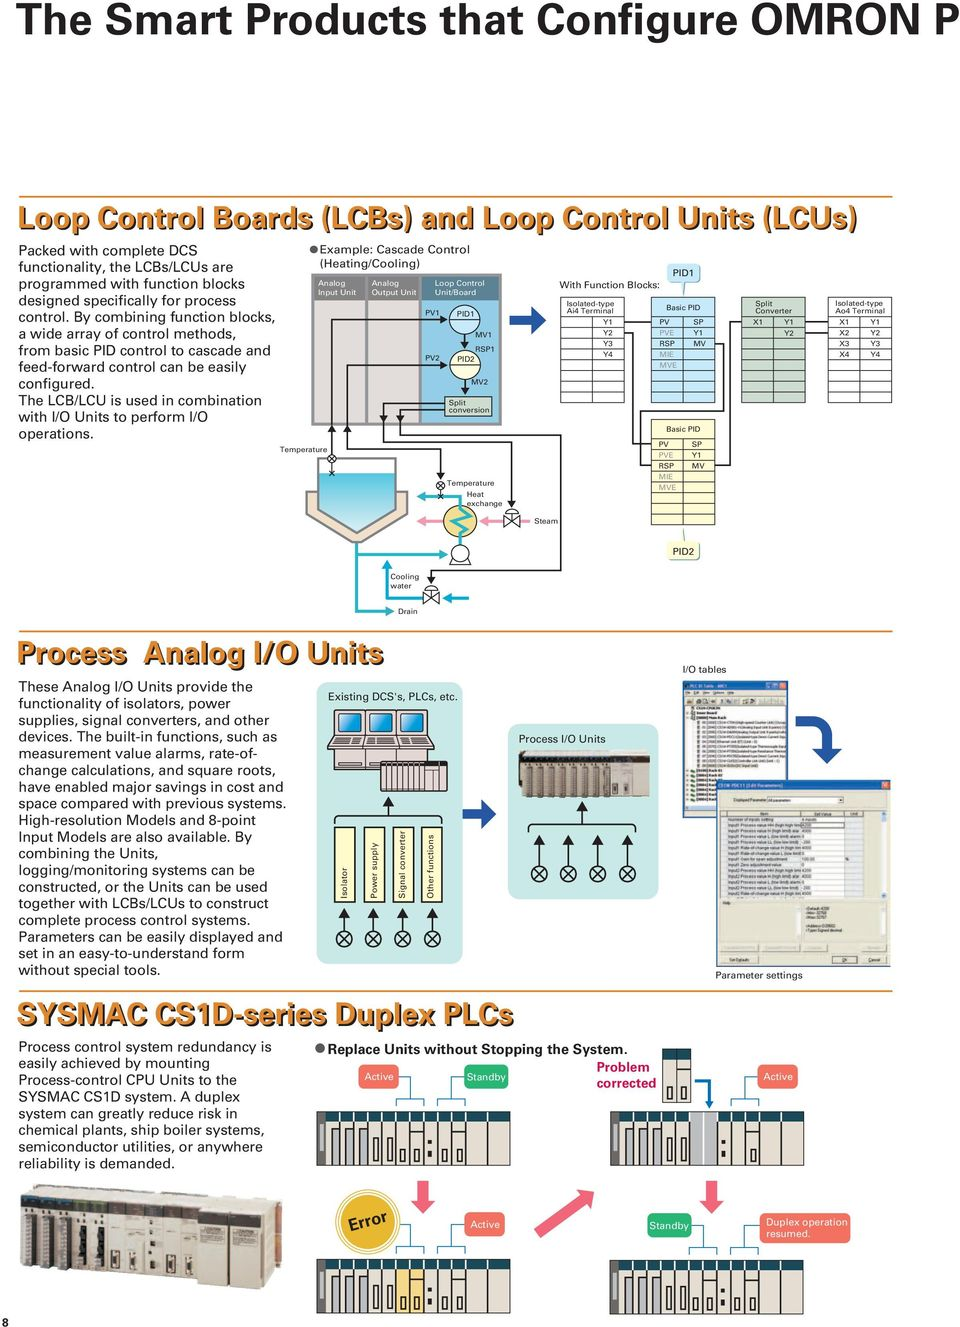 The LCB/LCU is used in combination with I/O Units to perform I/O operations.